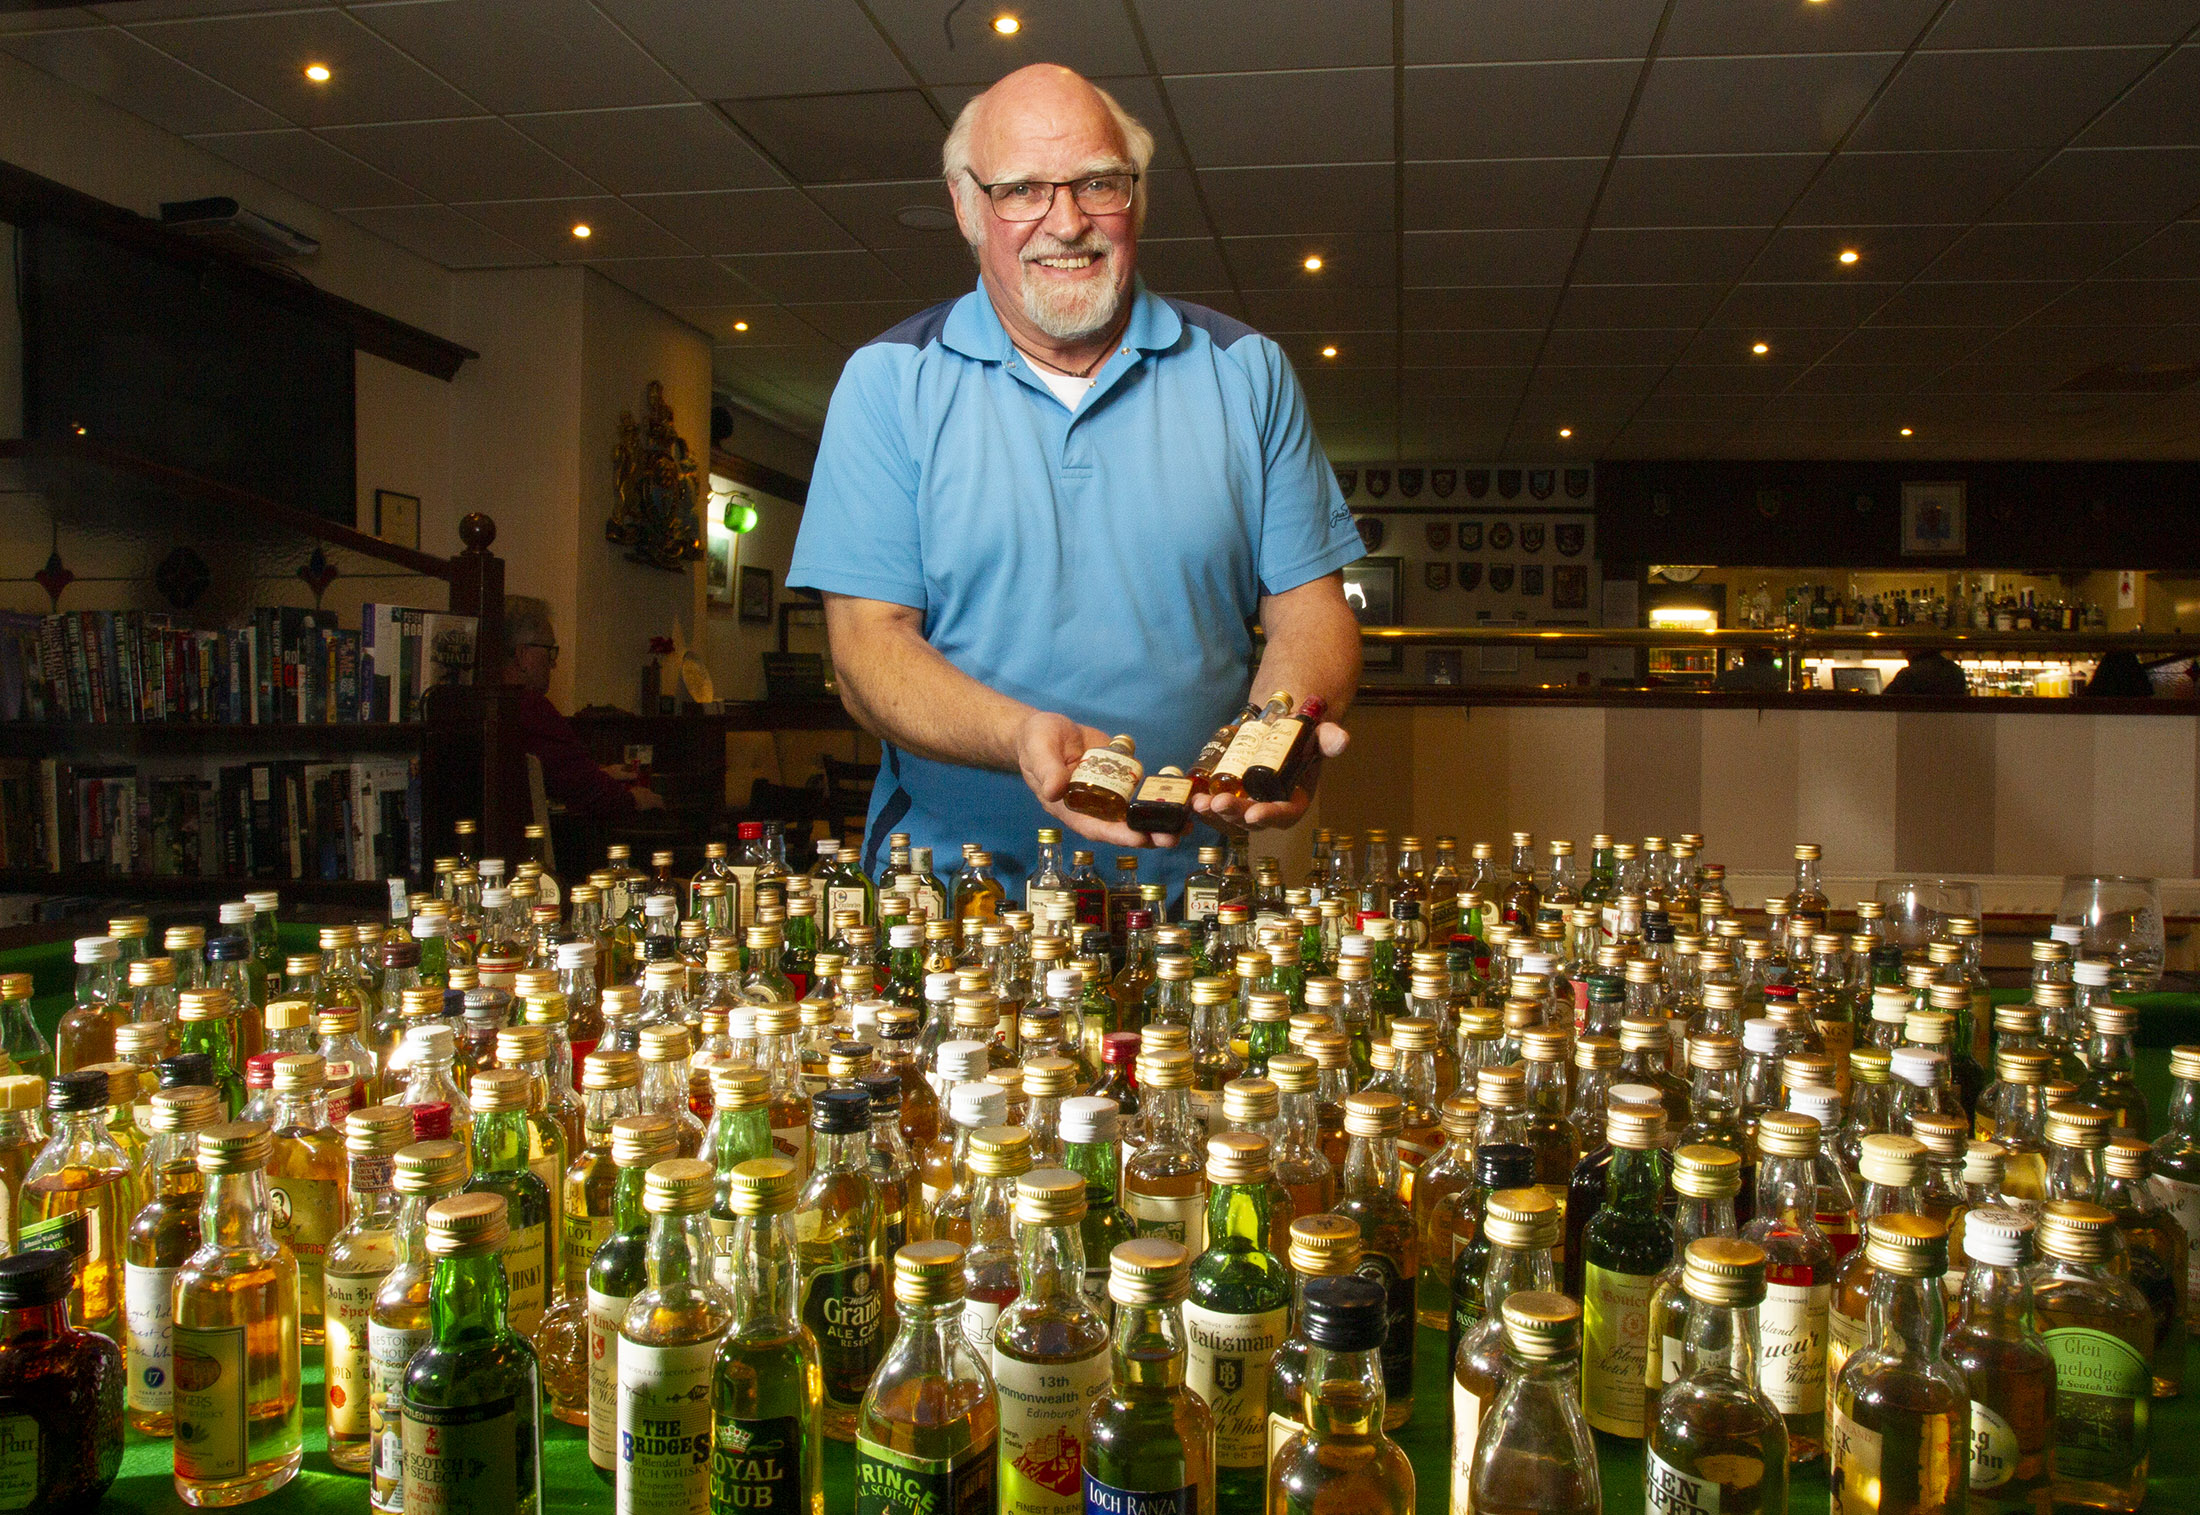 Steve Horsfall with his collection at the British Legion in Carnoustie